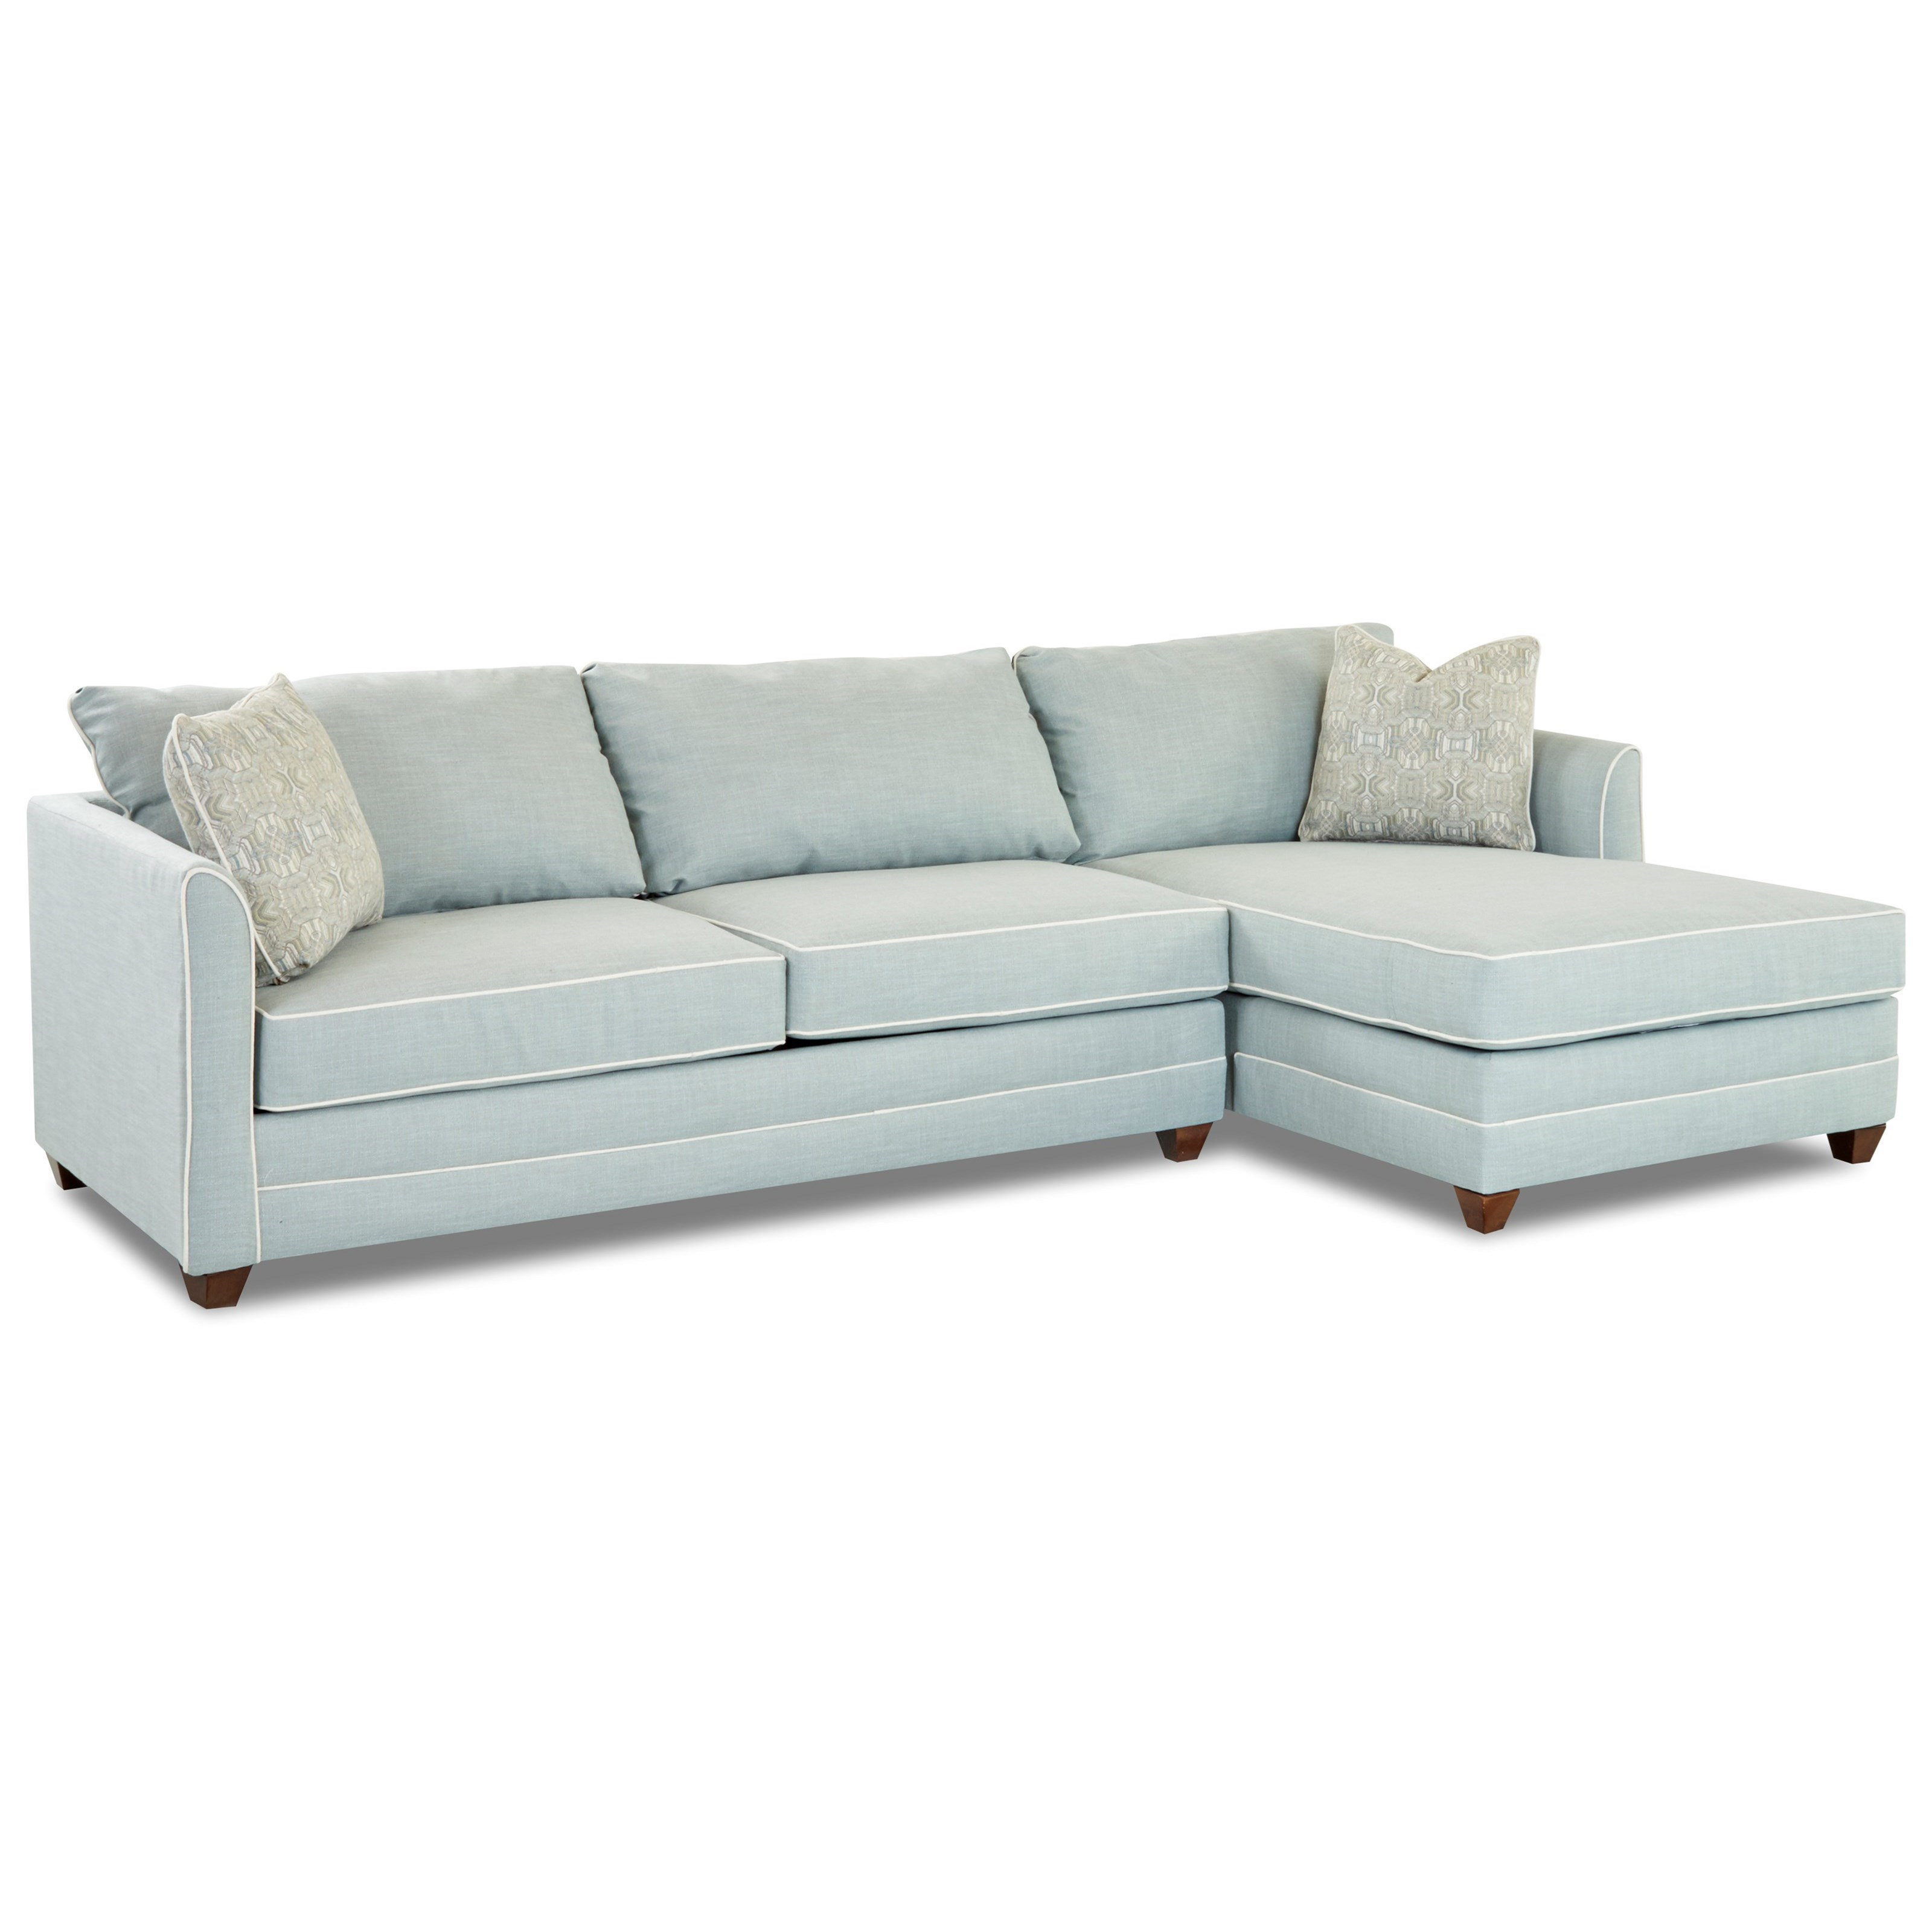 Klaussner Tilly Two Piece Sectional Sofa With LAF Sleeper Sofa And Enso Memory  Foam Mattress